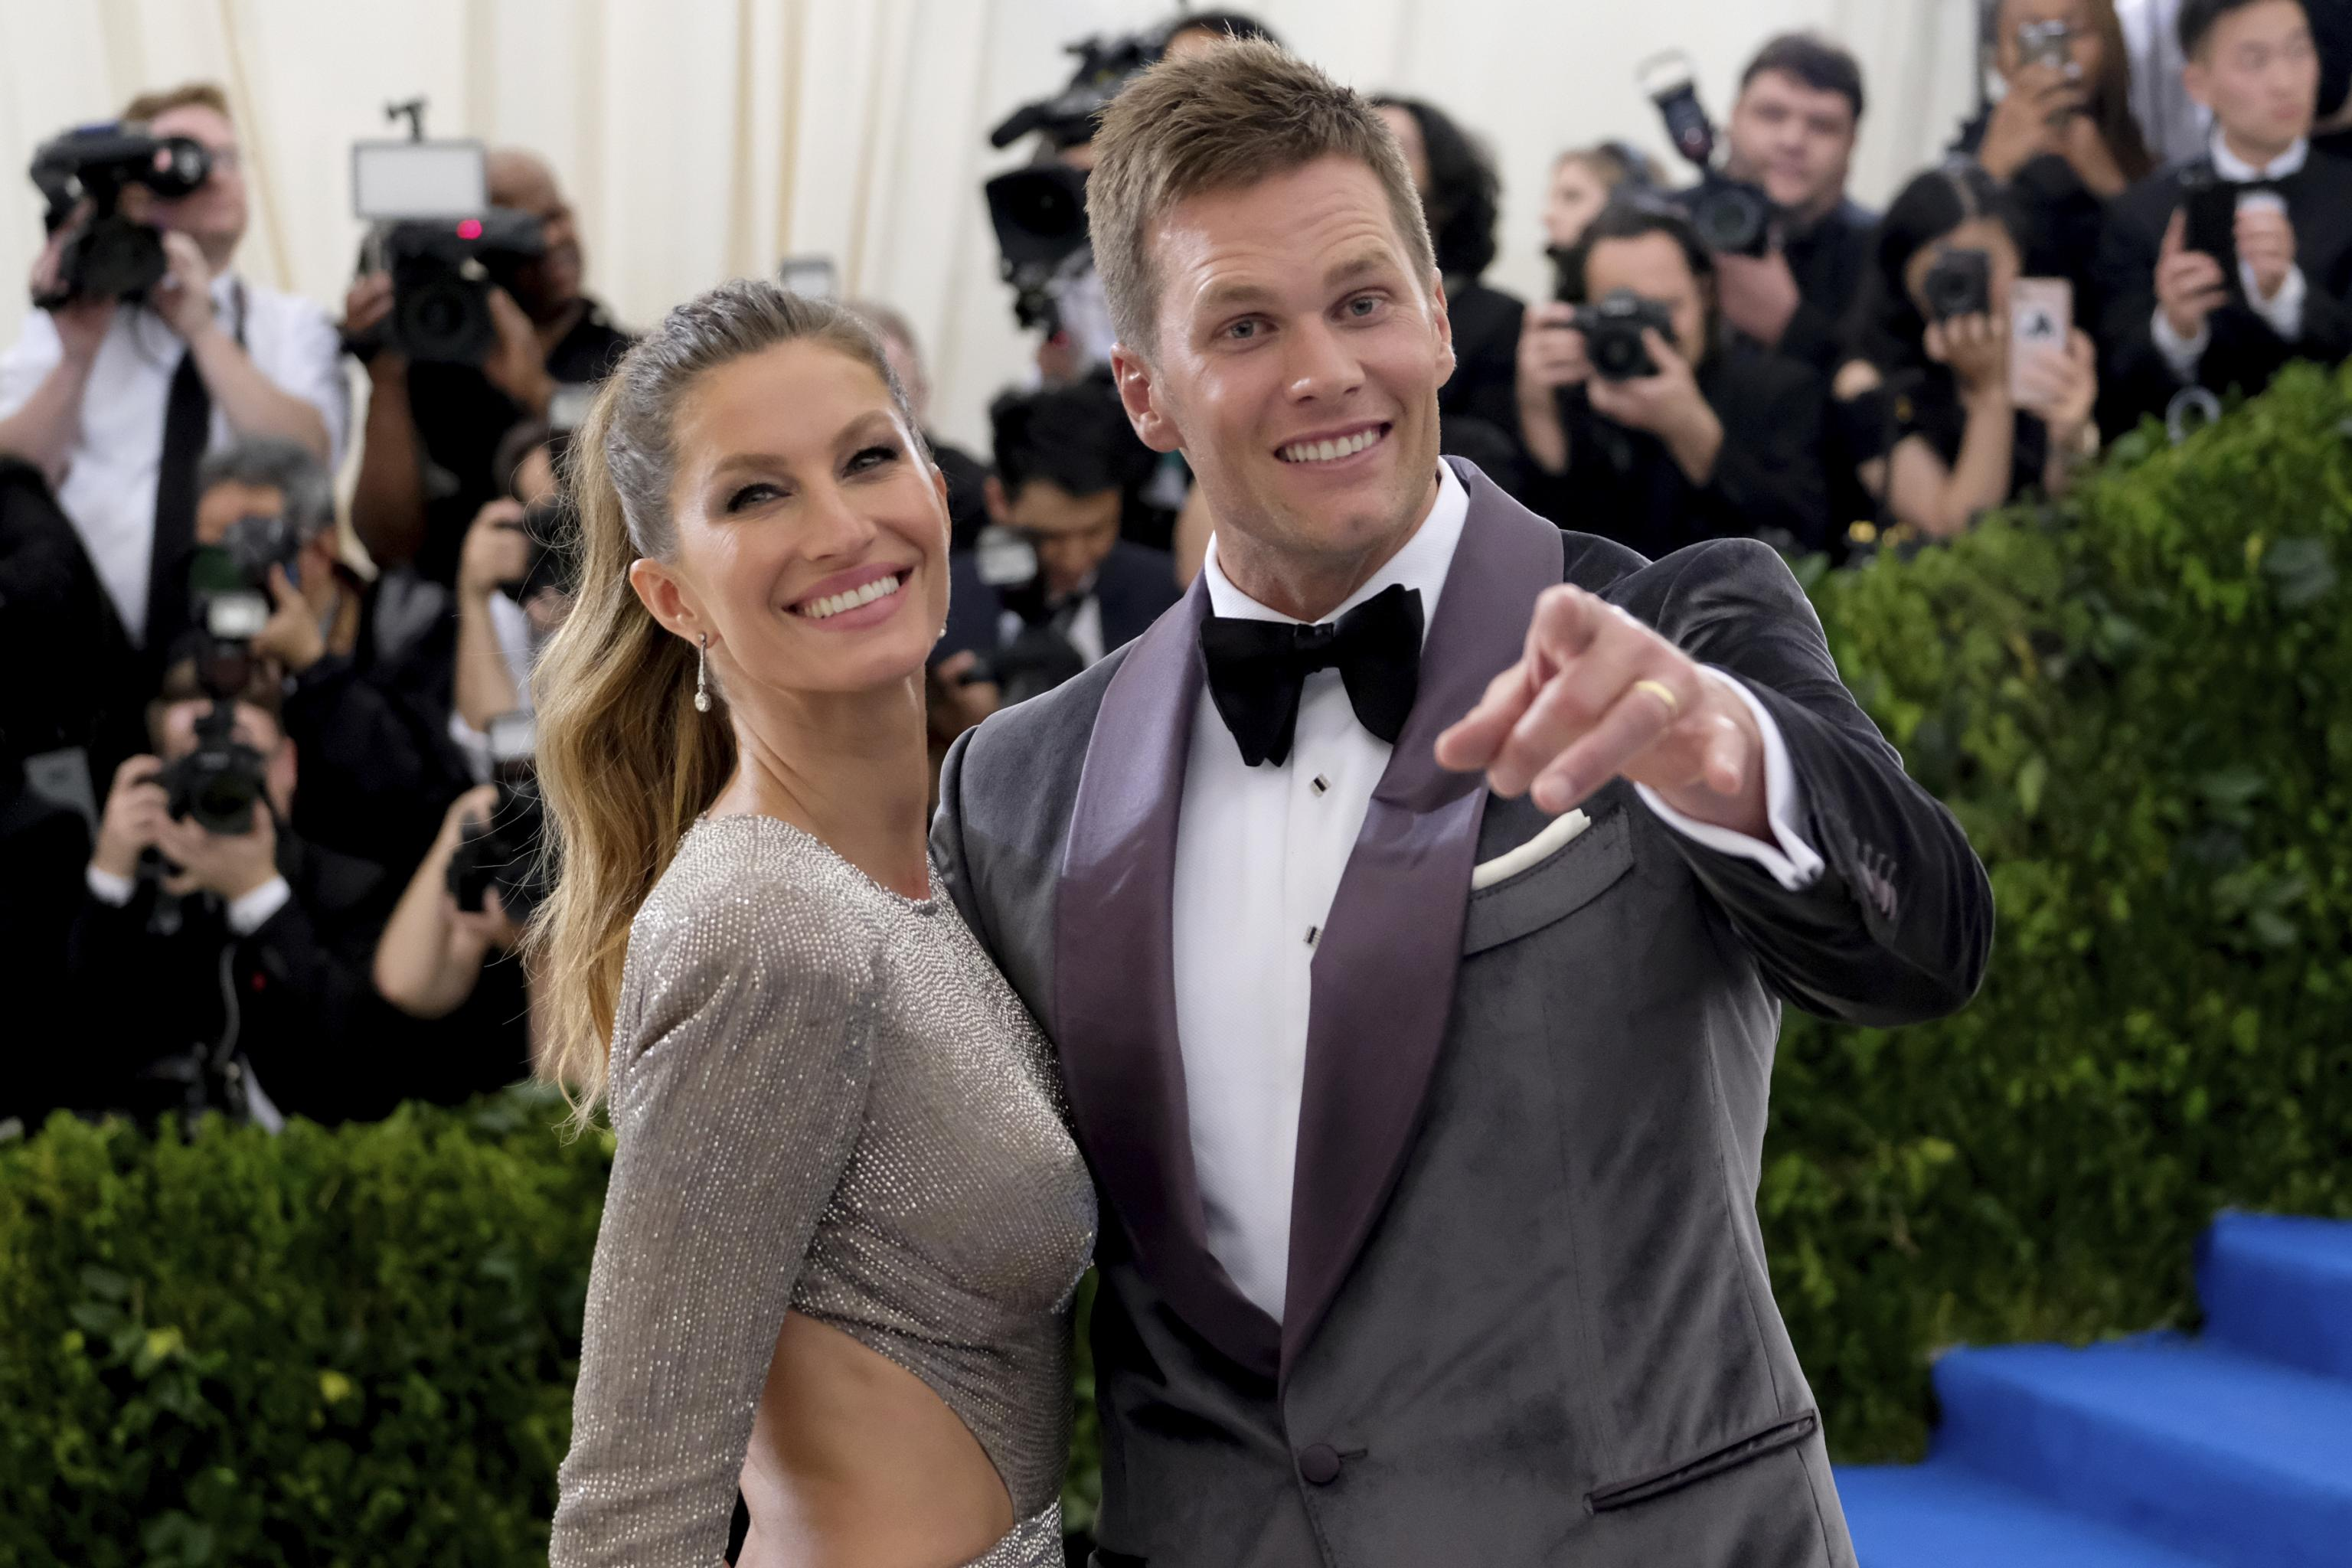 Tom Brady I Take Pay Cuts With Patriots Because My Wife Makes A Lot Of Money Bleacher Report Latest News Videos And Highlights